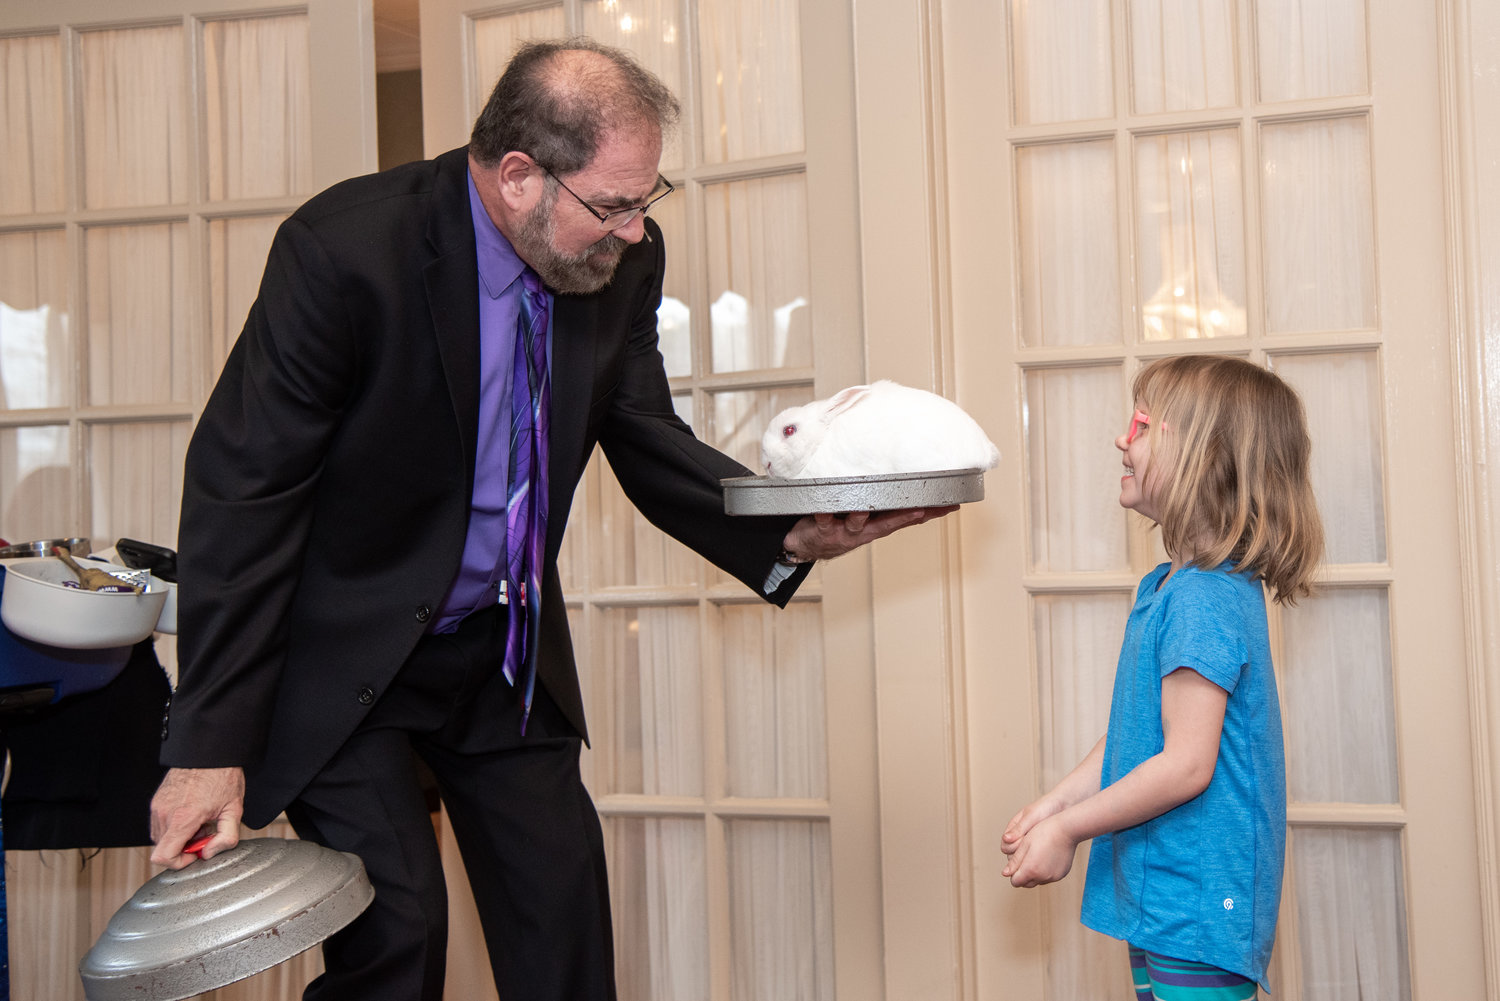 Julianne Klein, 5, was amazed by magician Dave Funn's disappearing/reappearing bunny trick at the Regency Assisted Living center.